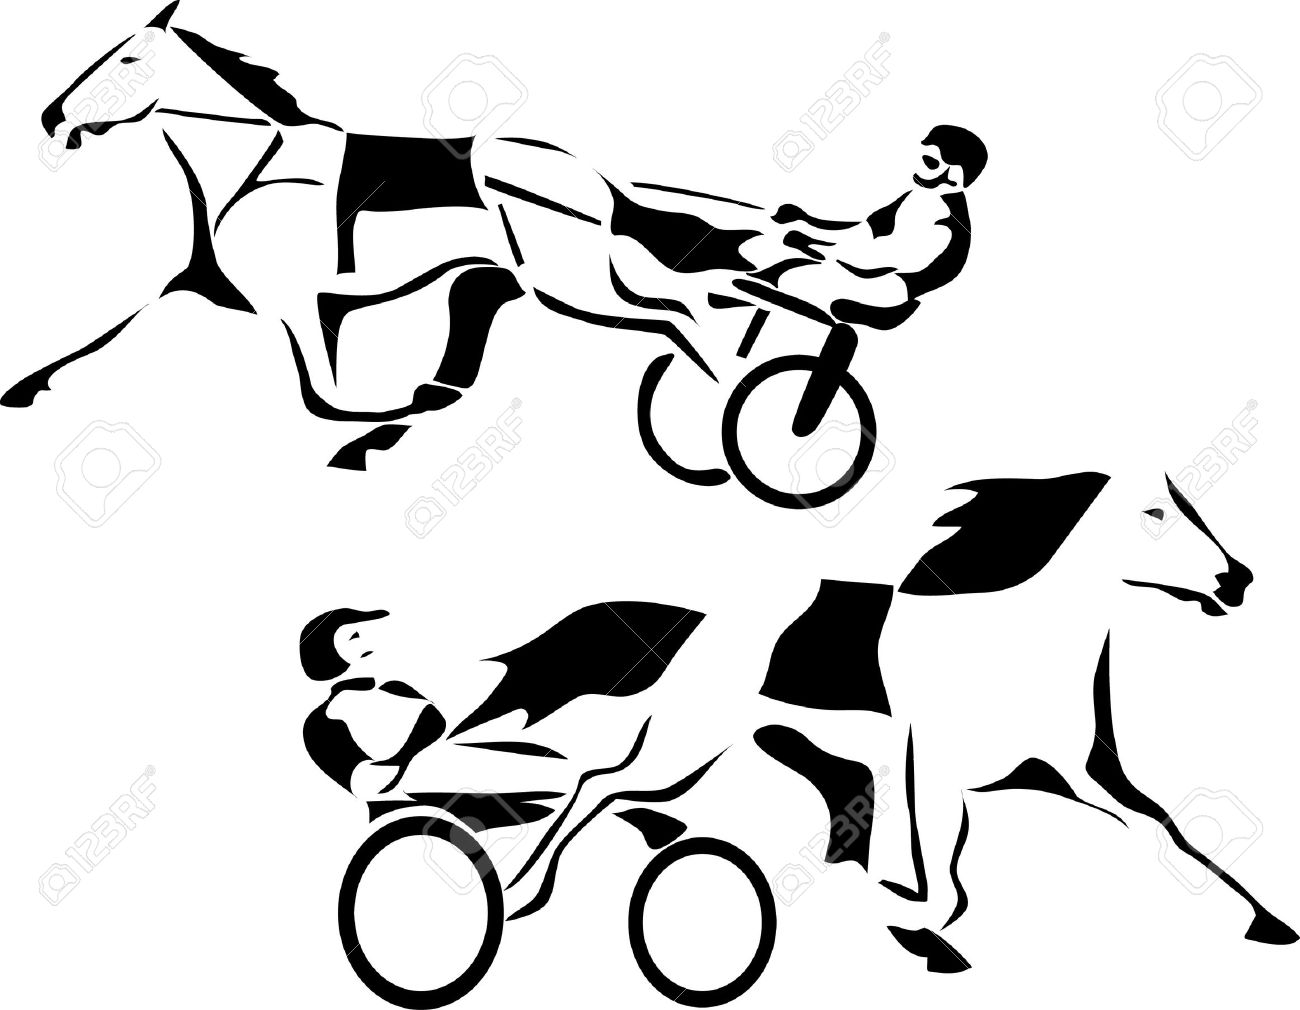 Standardbred Clipart